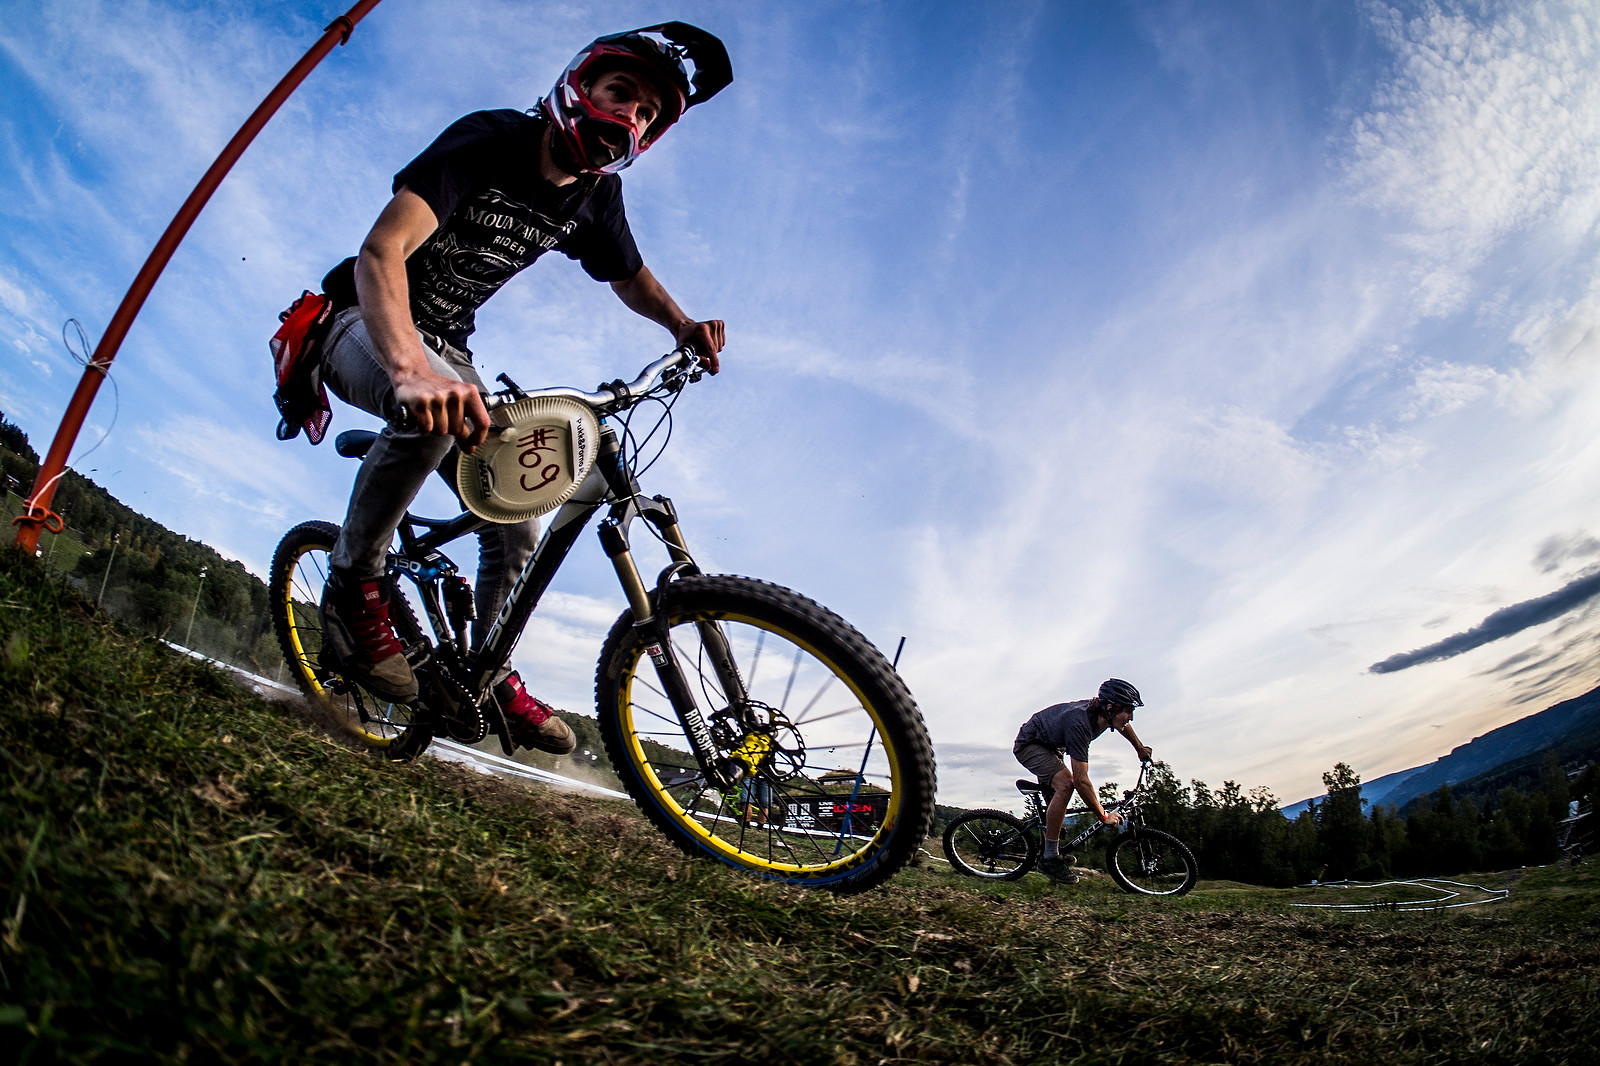 @Maddogboris Industry Race Ripper - Has-Beens vs. Wannabes! Industry World Champs Race at Hafjell - Mountain Biking Pictures - Vital MTB